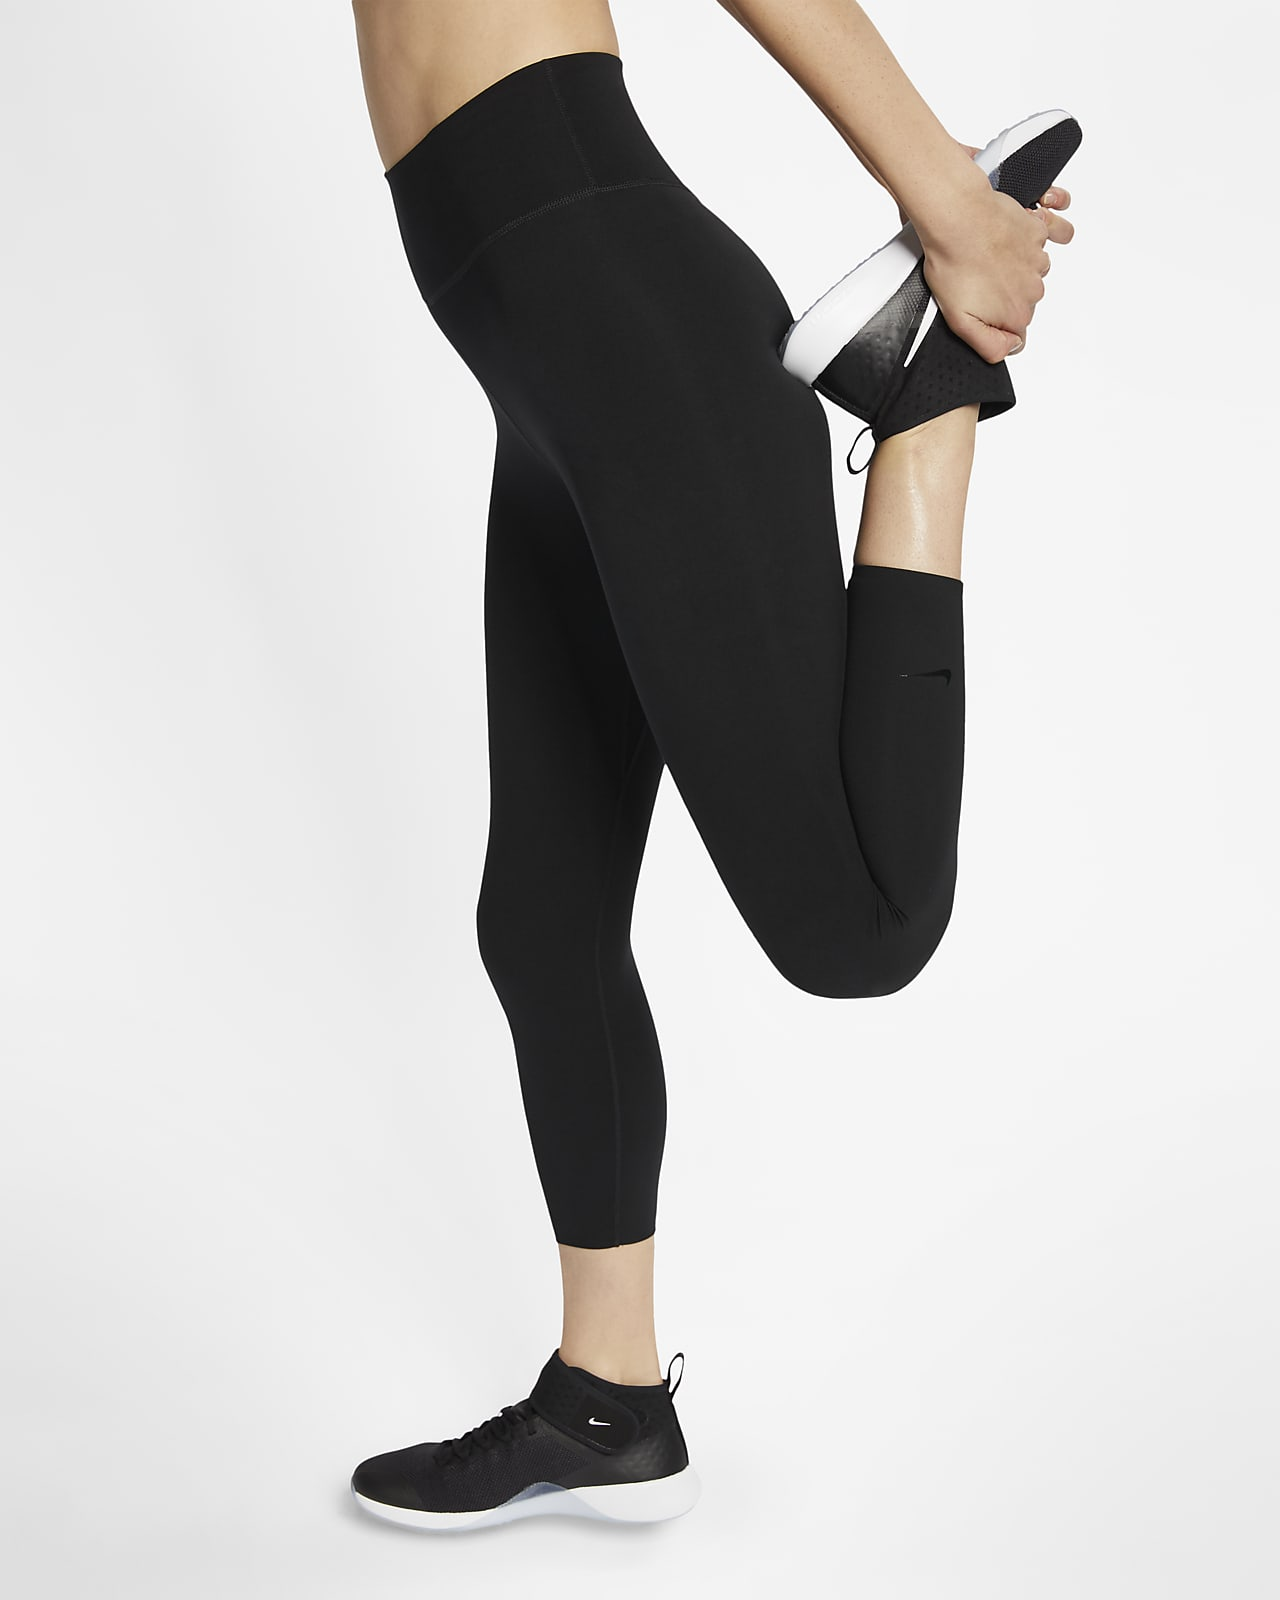 Nike One Luxe Women's Mid-Rise Cropped Tights